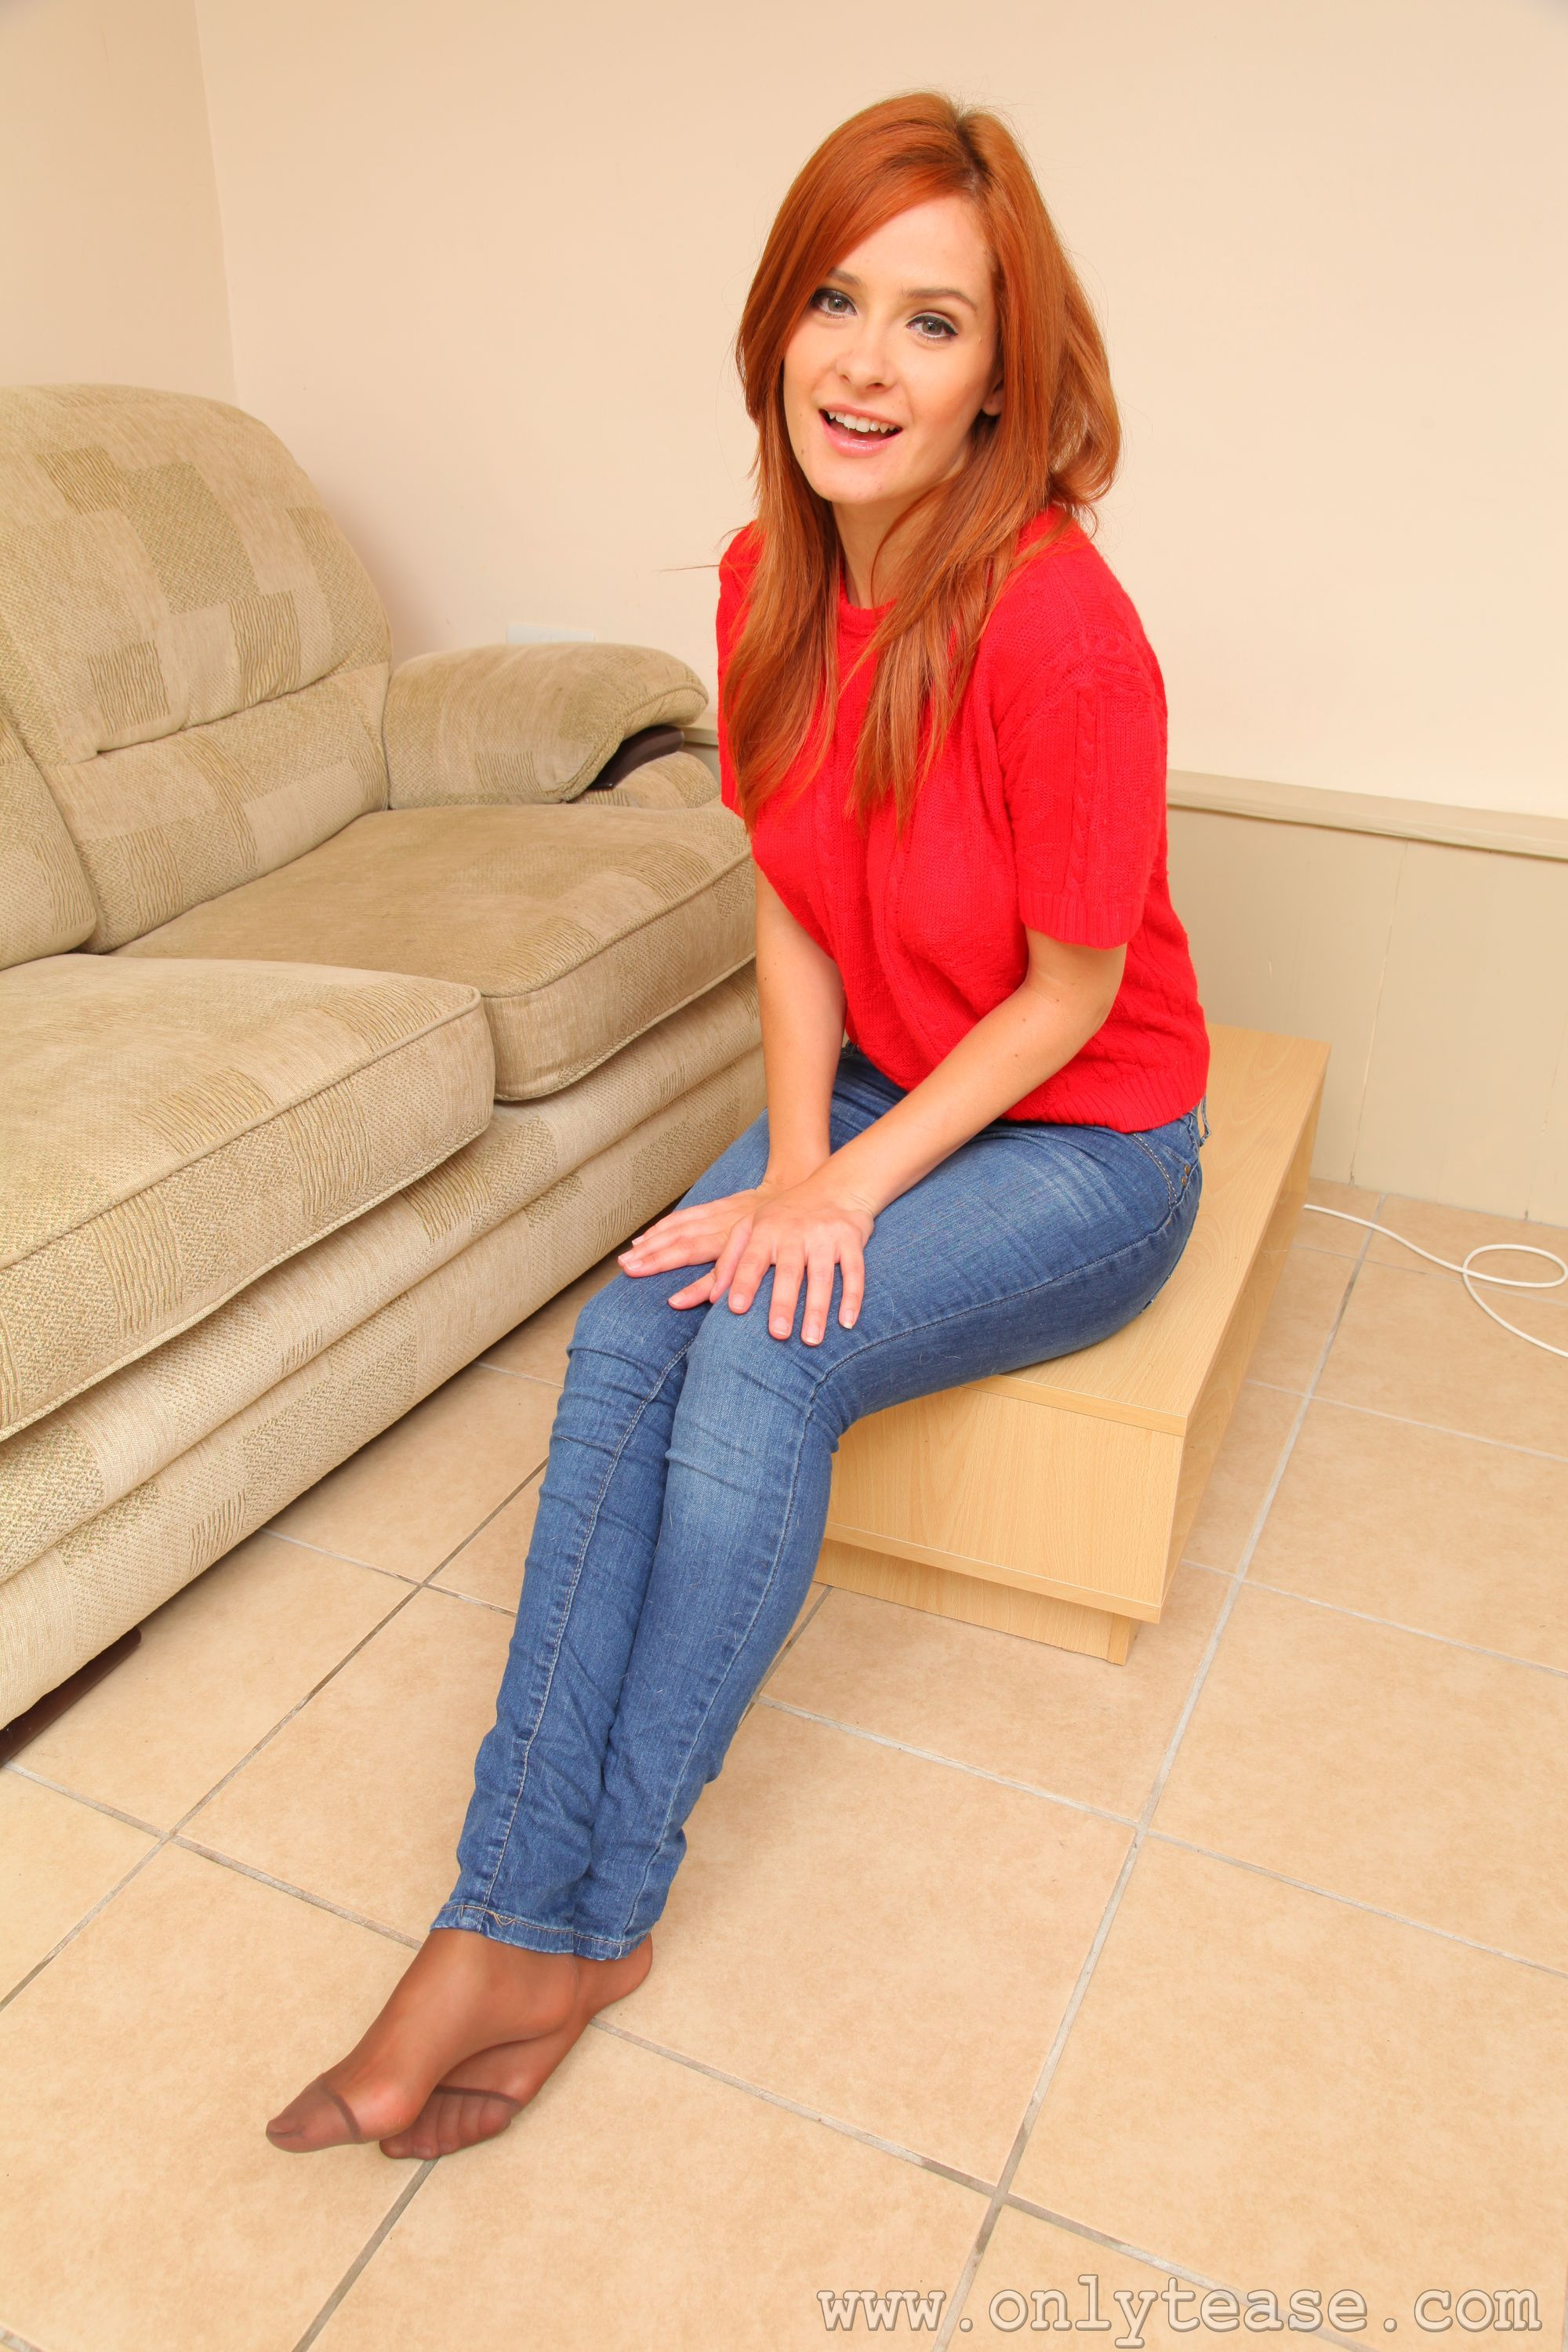 Feet pantyhose jeans images-6453